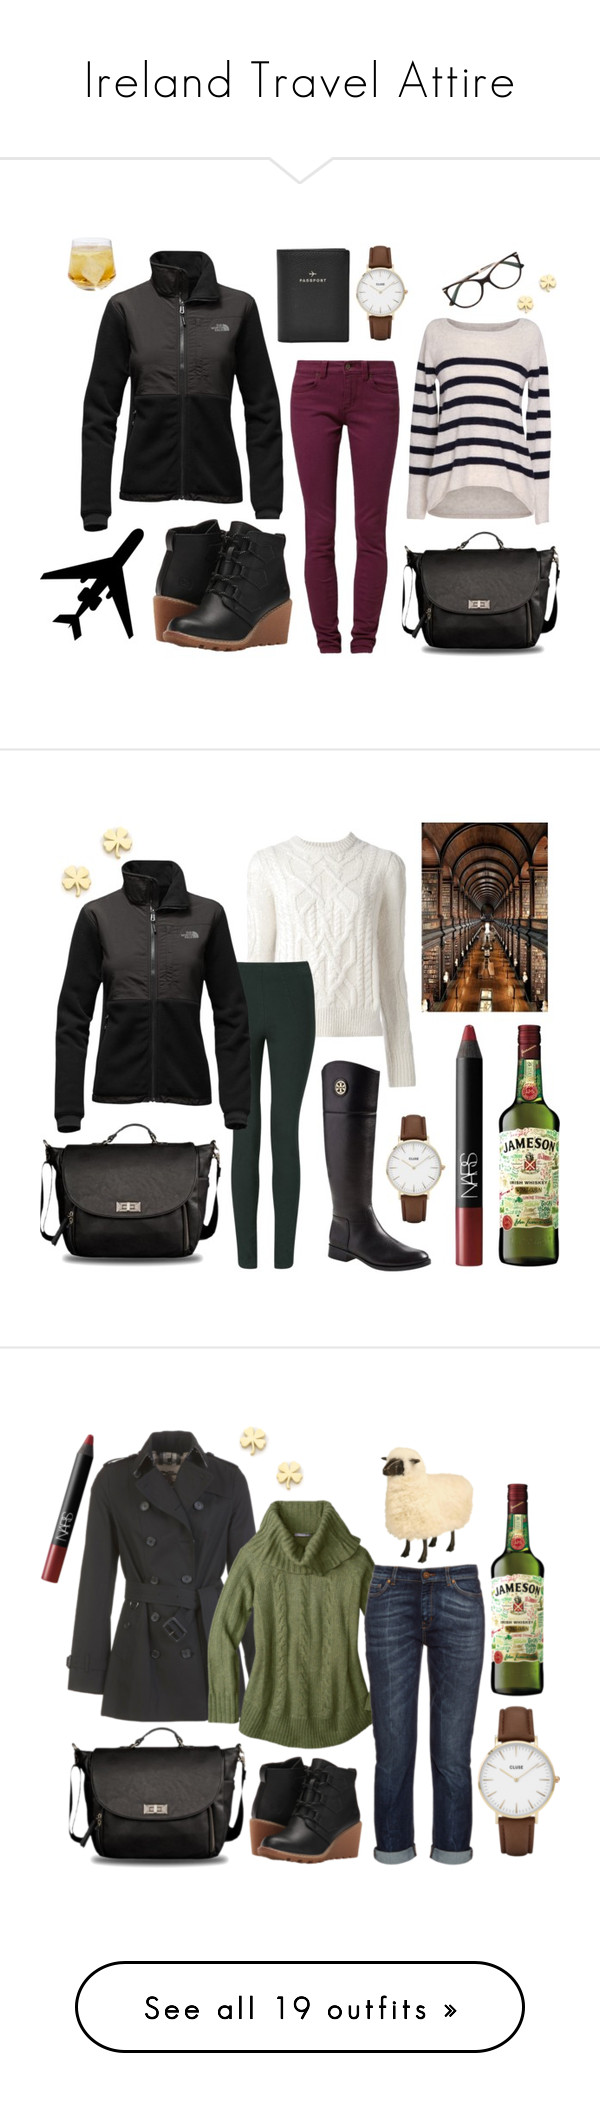 """Ireland Travel Attire"" by andreabrittingham on Polyvore featuring The North Face, TWINTIP, Velvet by Graham & Spencer, Bulgari, FOSSIL, CLUSE, Schott Zwiesel, Jennifer Meyer Jewelry, Isabel Marant and Phase Eight"